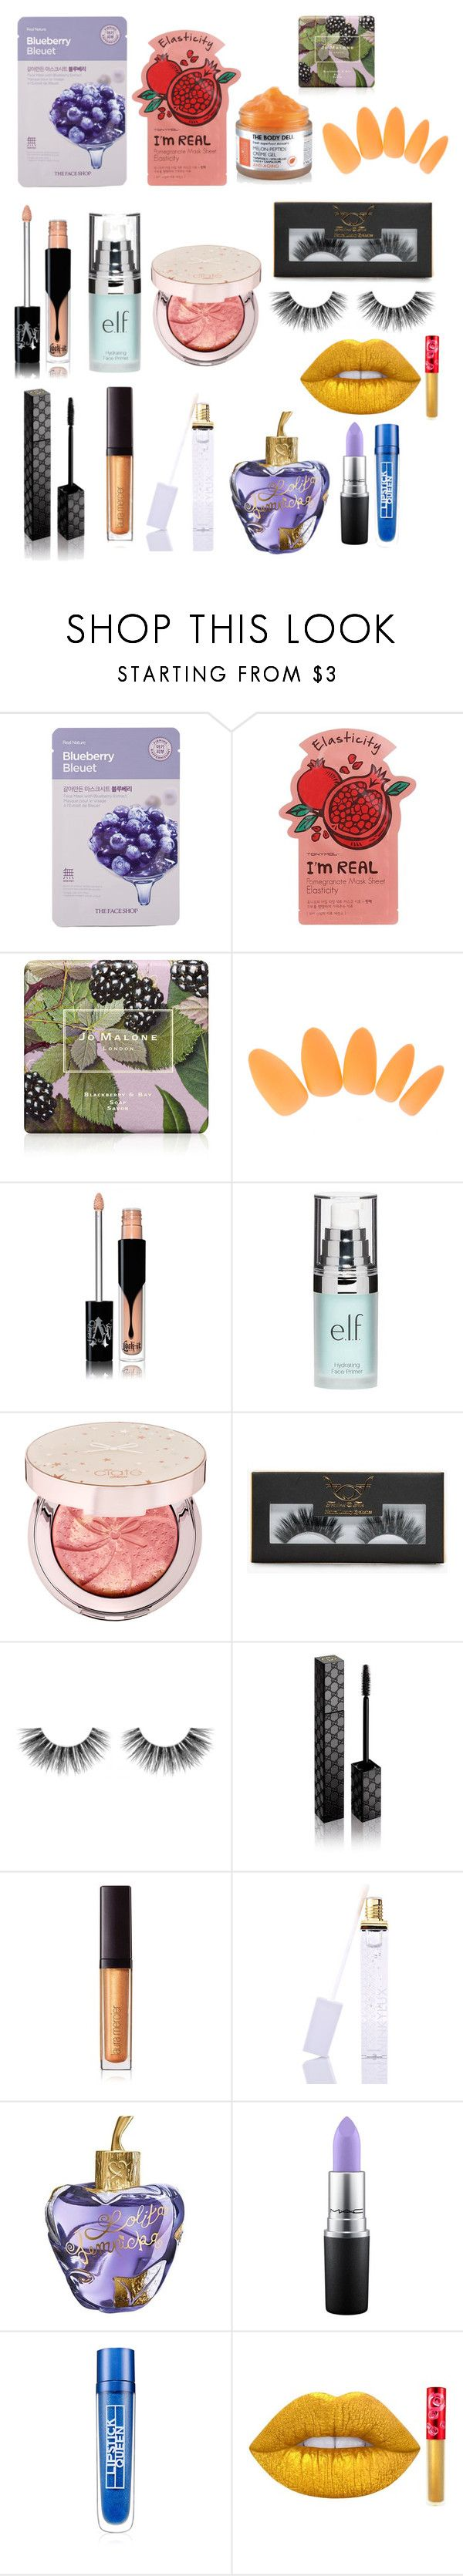 """ramdom"" by mfr-mtz ❤ liked on Polyvore featuring The Face Shop, Charlotte Russe, Jo Malone, Kat Von D, Old Navy, Ciaté, Boohoo, Velour Lashes, Gucci and Laura Mercier"